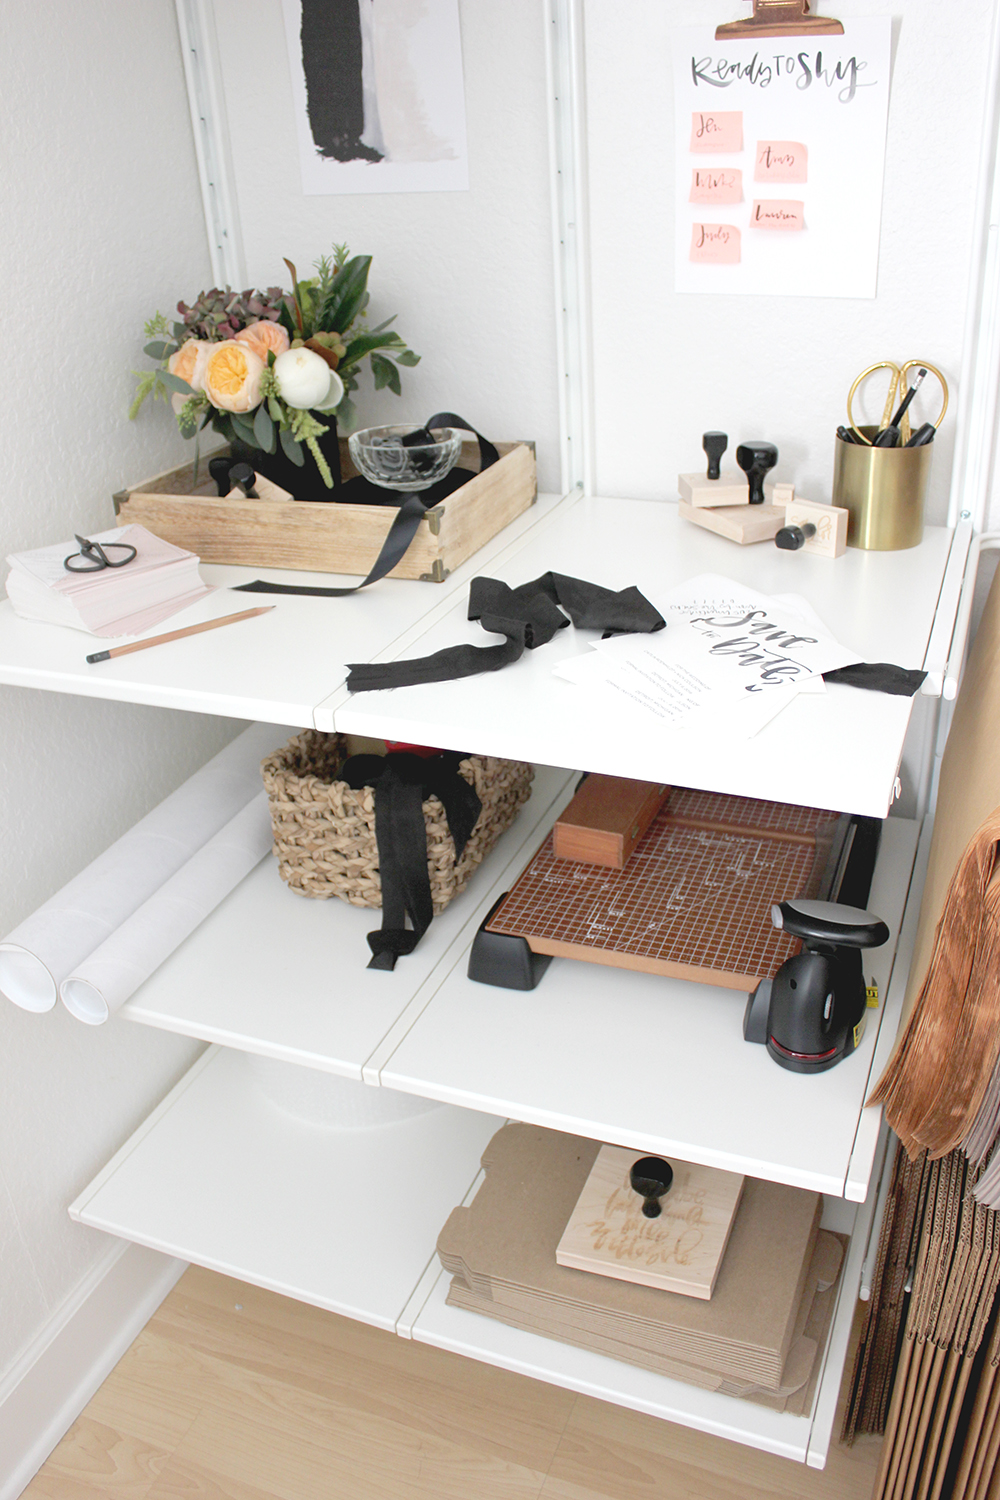 Extra closet before + after | A Fabulous Fete